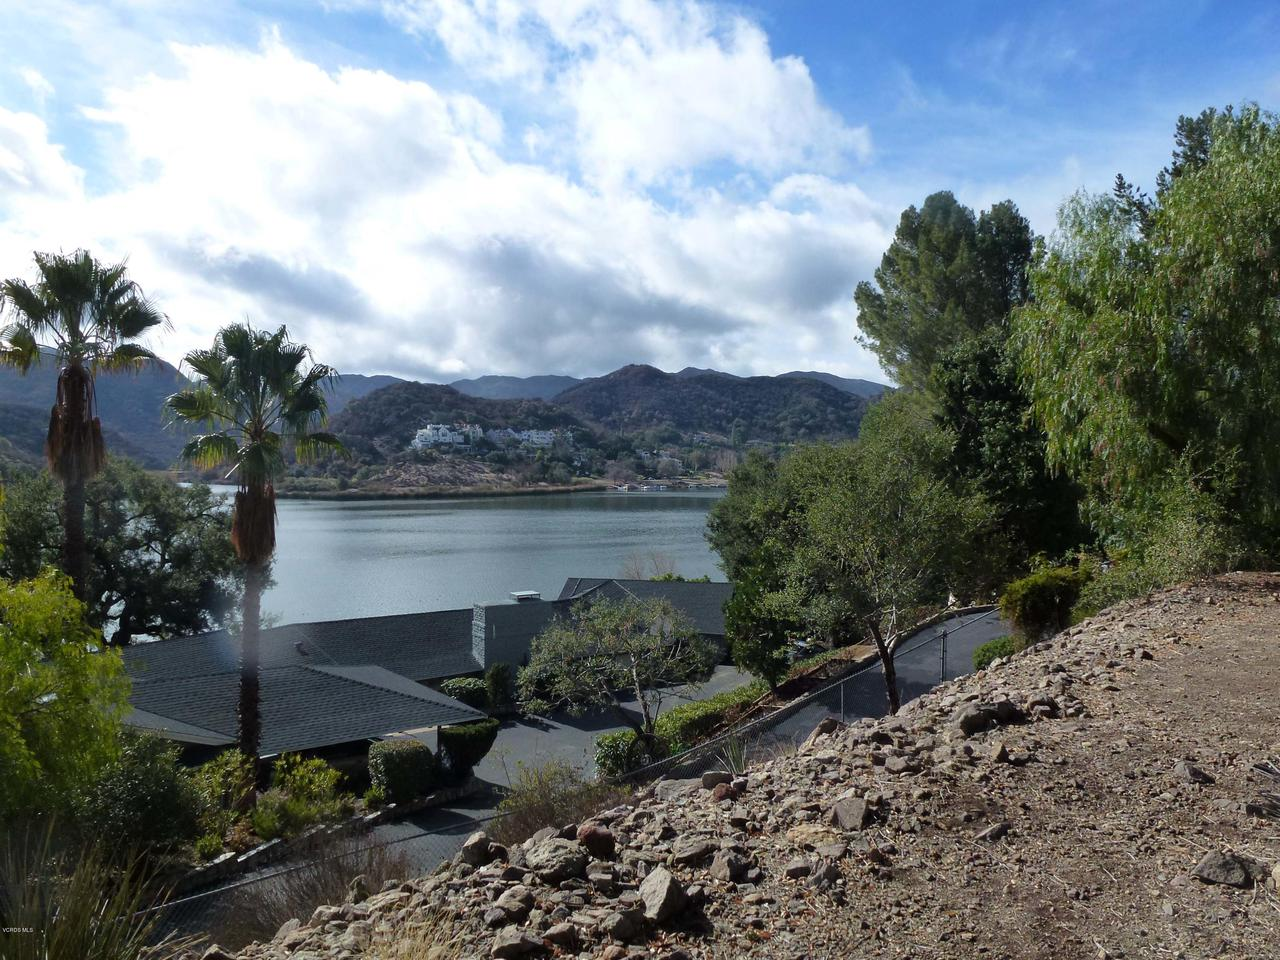 520 LAKE SHERWOOD, Lake Sherwood, CA 91361 - lake view